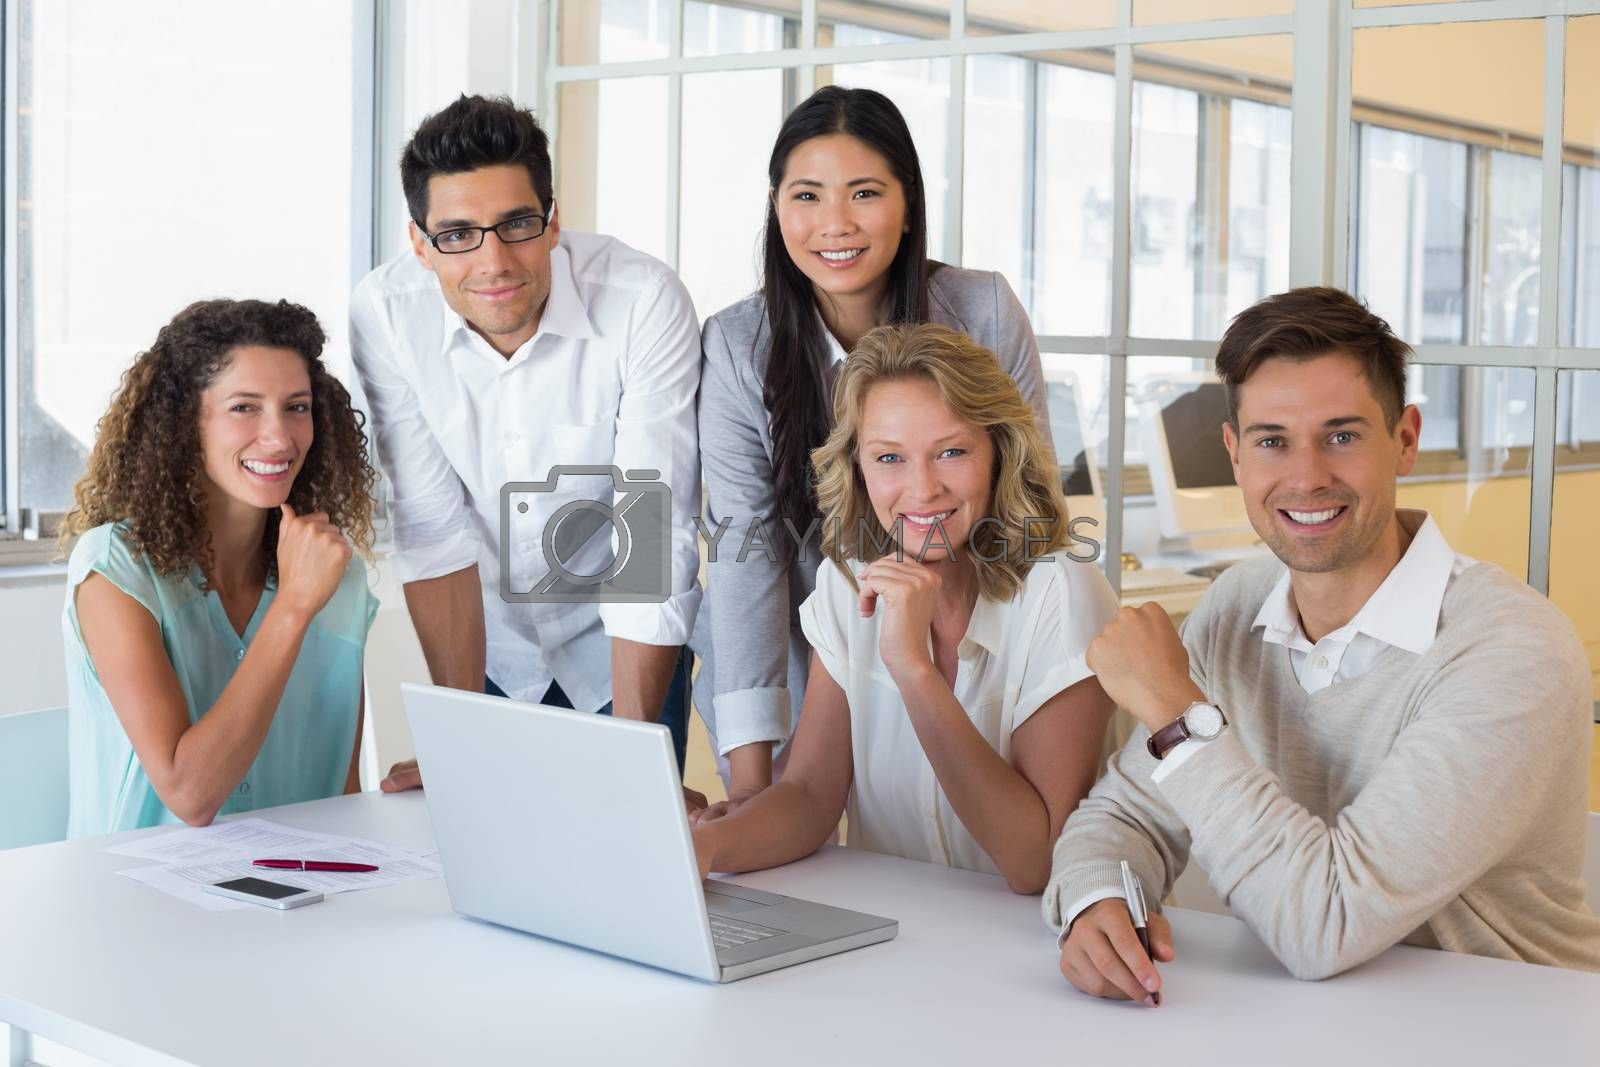 Royalty free image of Casual smiling business team having a meeting using laptop by Wavebreakmedia